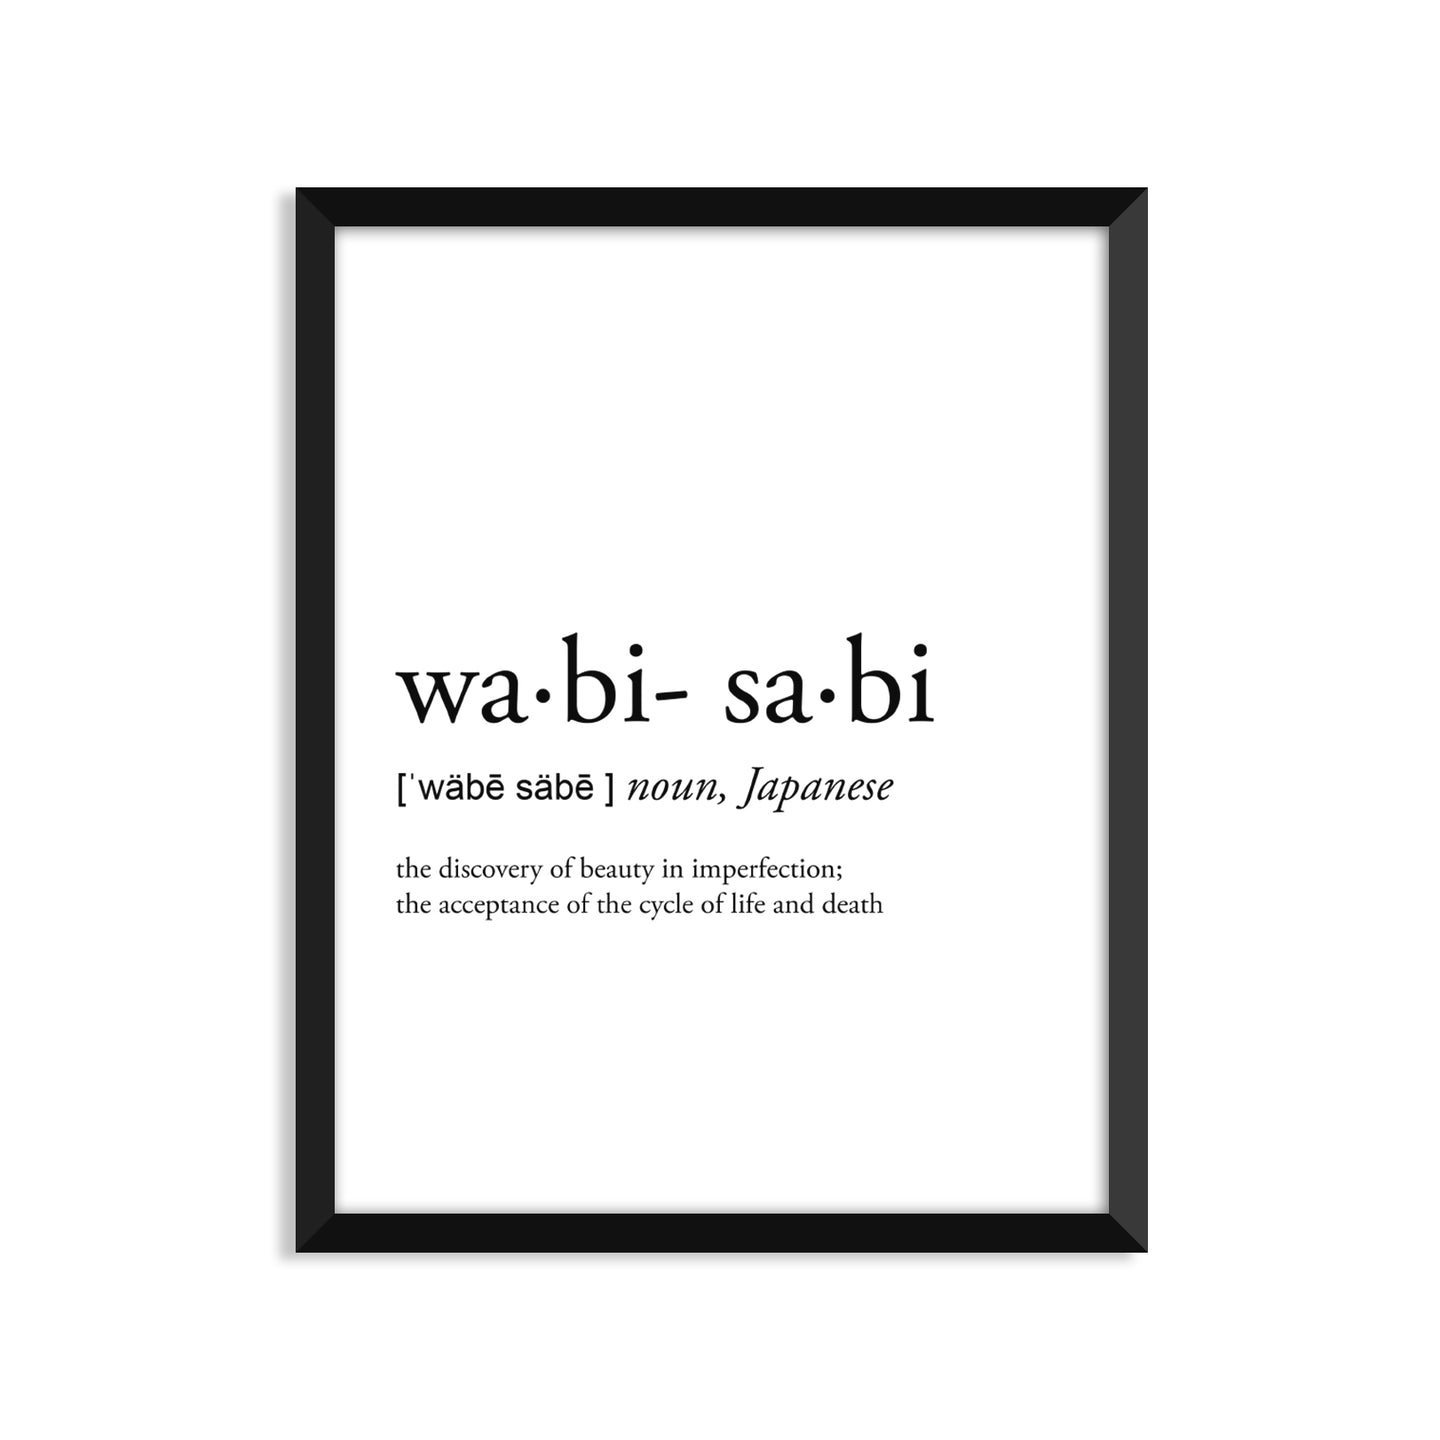 Wabi-Sabi Definition - Unframed Art Print Or Greeting Card